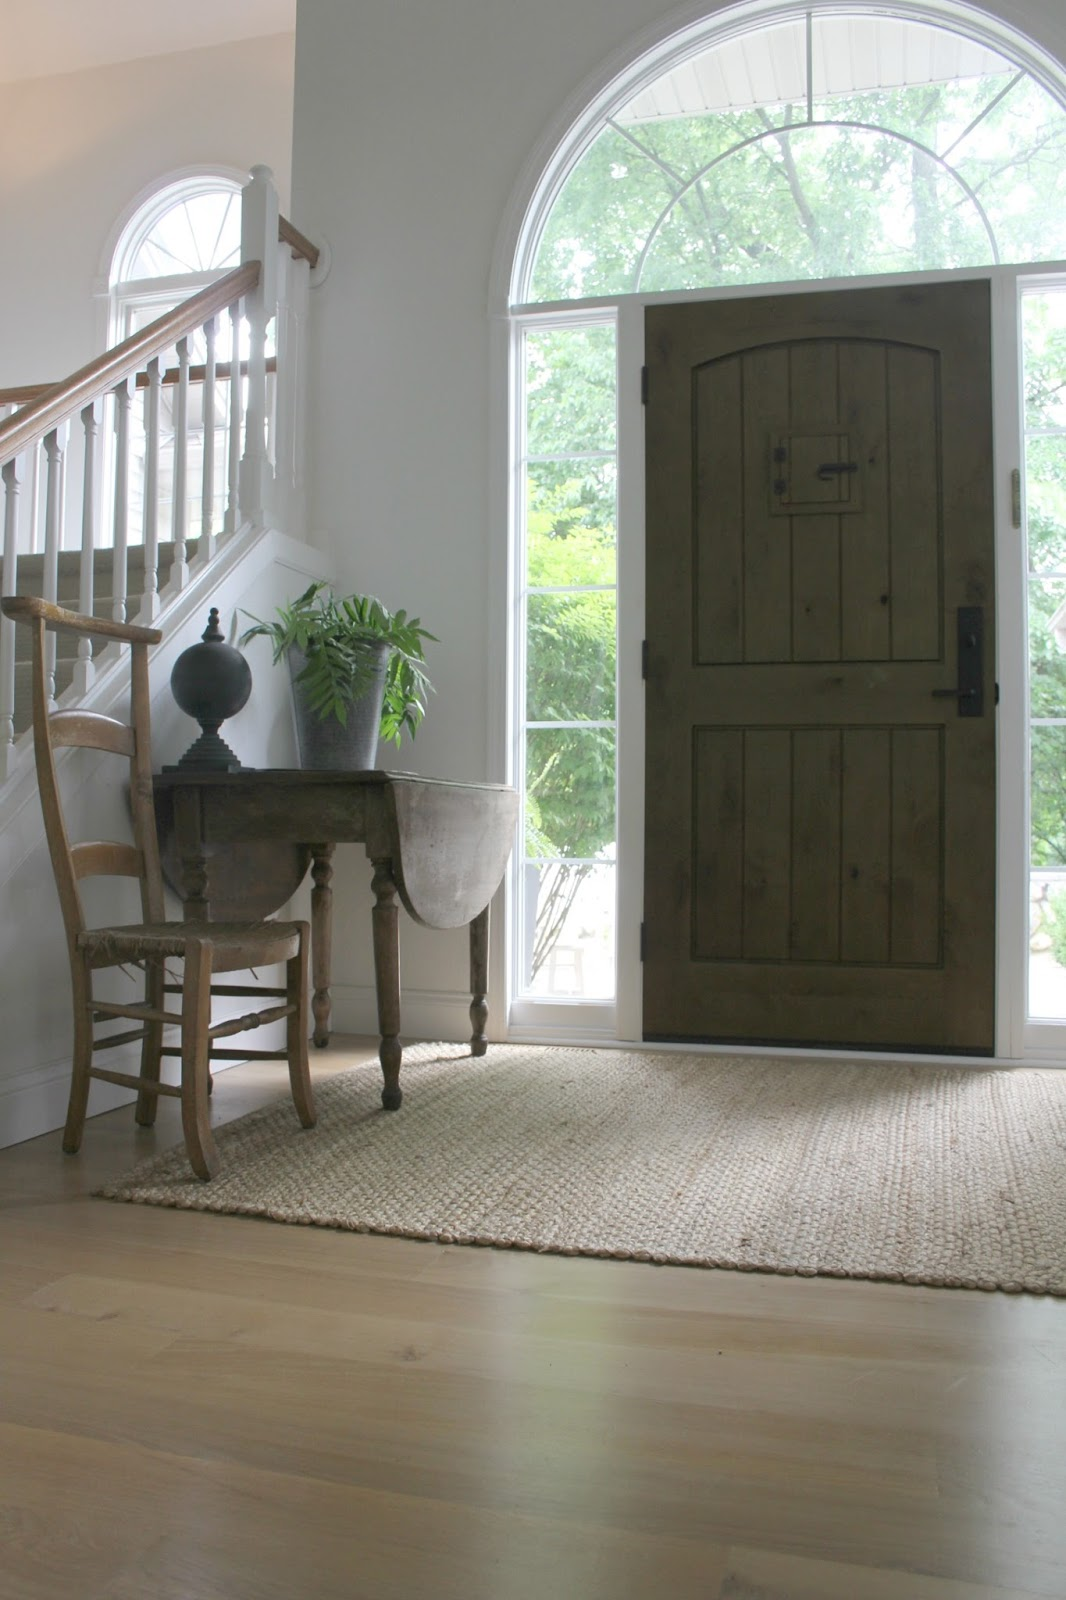 CKnotty rustic alder wood planked front door with speakeasy in a lofty entry with antique dropleaf table, dried hydrangea, and French prayer chair  within a European Country cottage by Hello Lovely Studio.